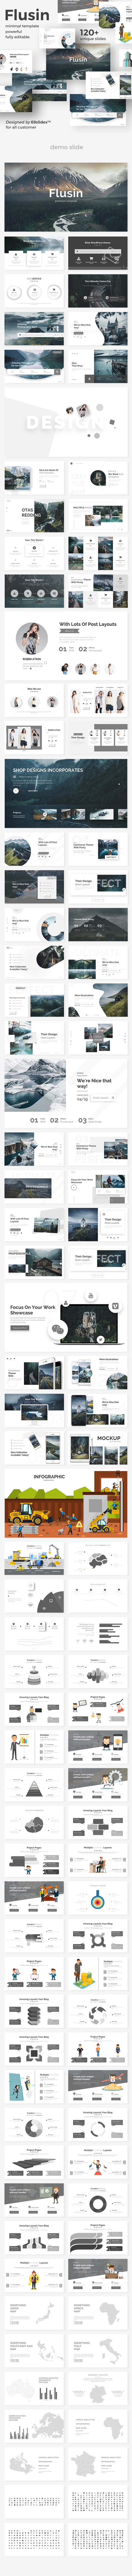 Flusin Creative Keynote Template - Creative Keynote Templates